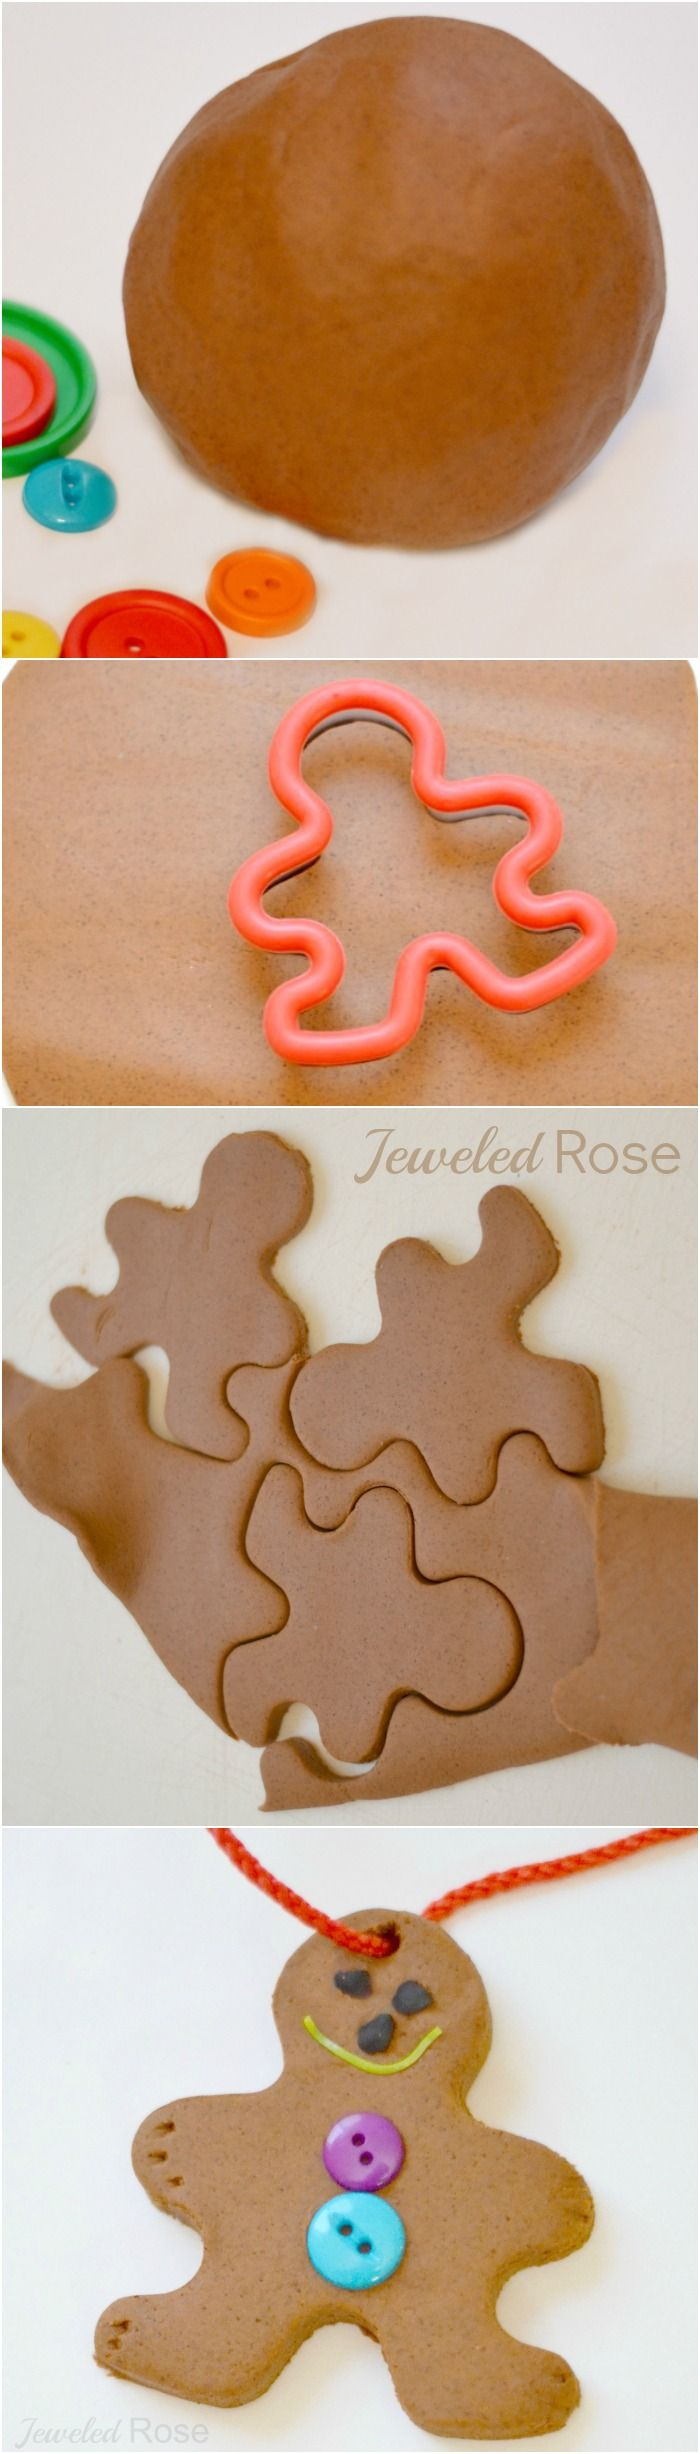 Gingerbread man ornament craft - Make Scented Gingerbread Ornaments With This Easy To Make Gingerbread Clay From Growing A Jeweled Rose